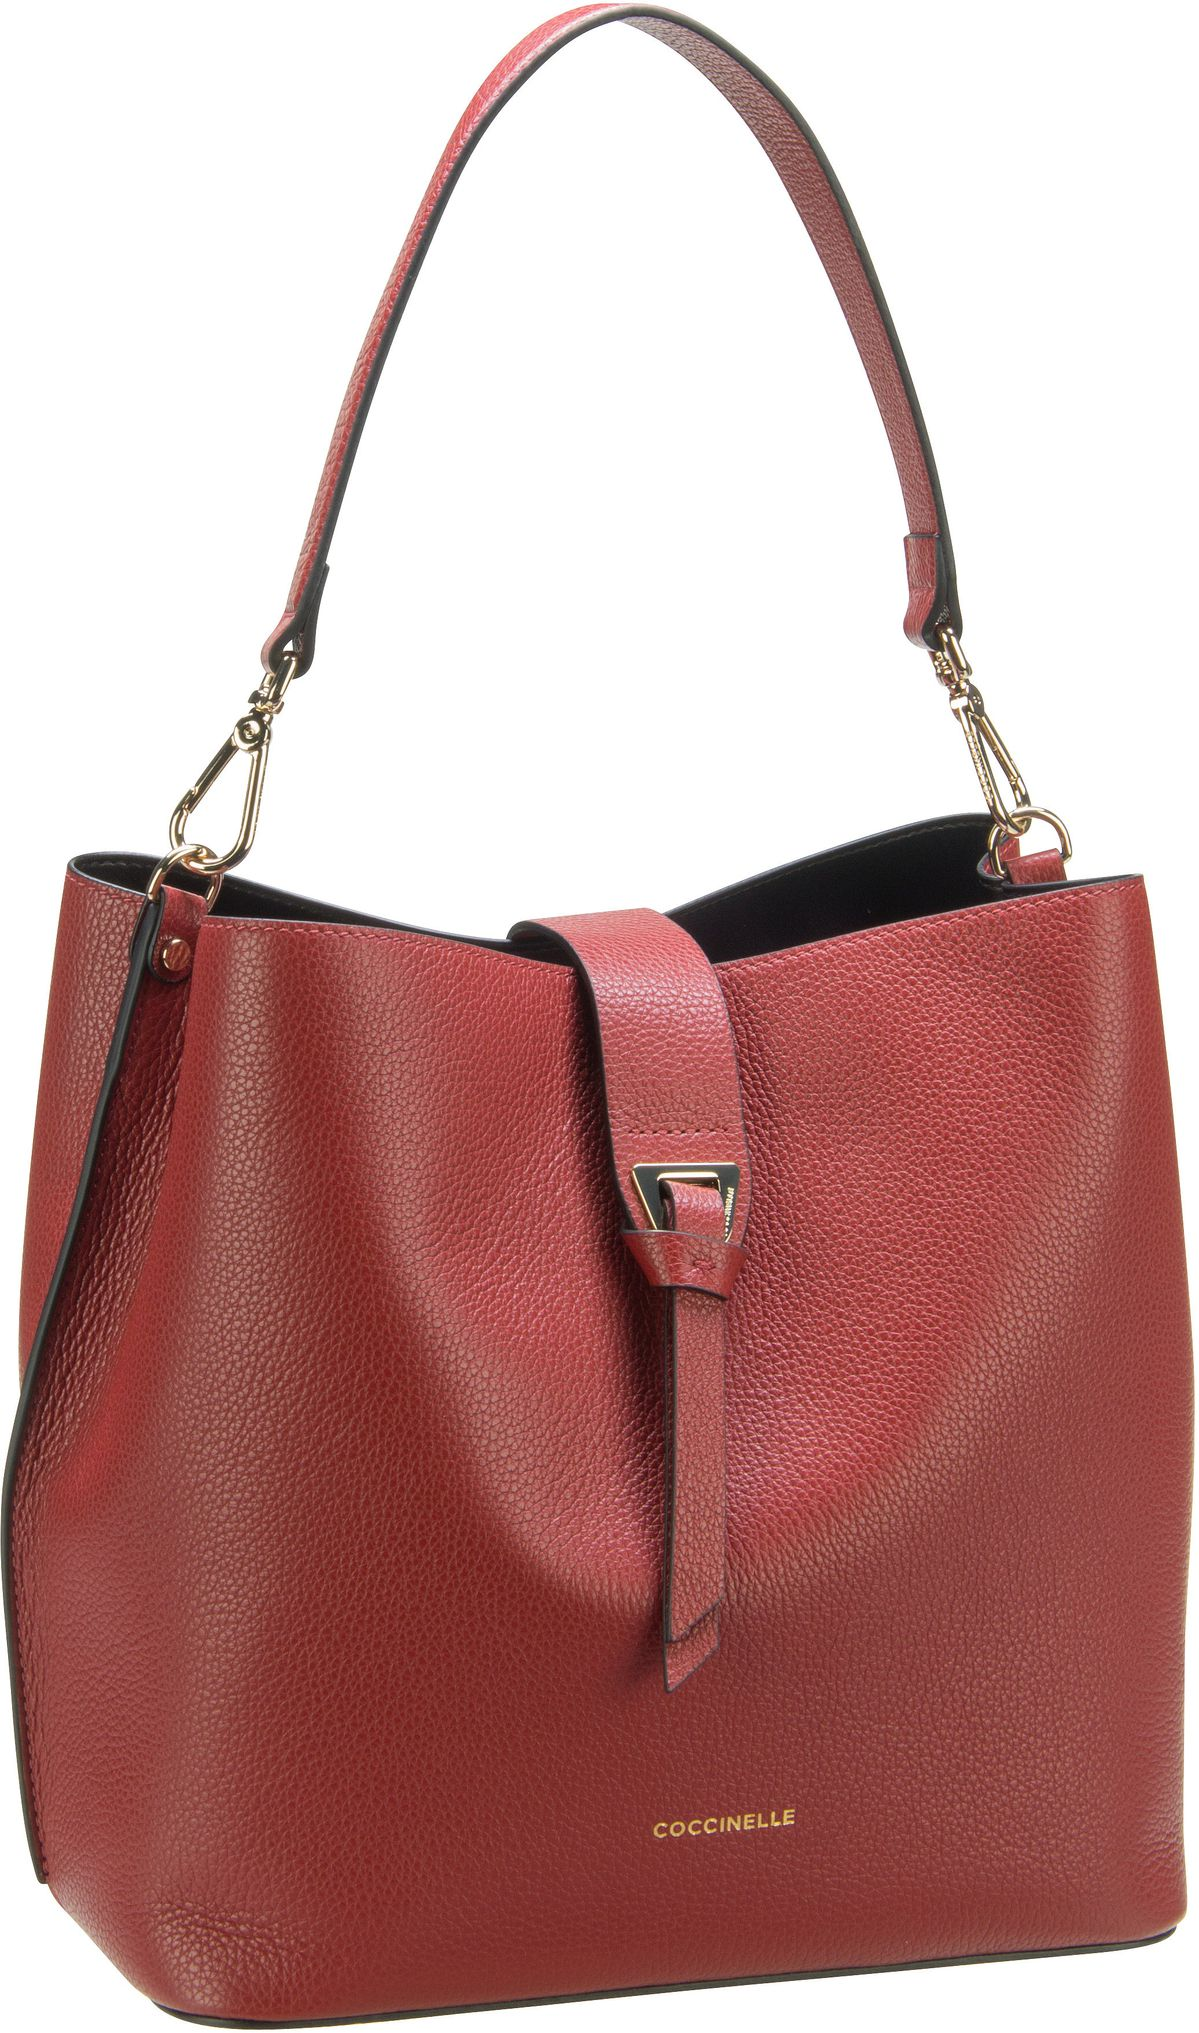 Handtasche Alba 1301 Foliage Red